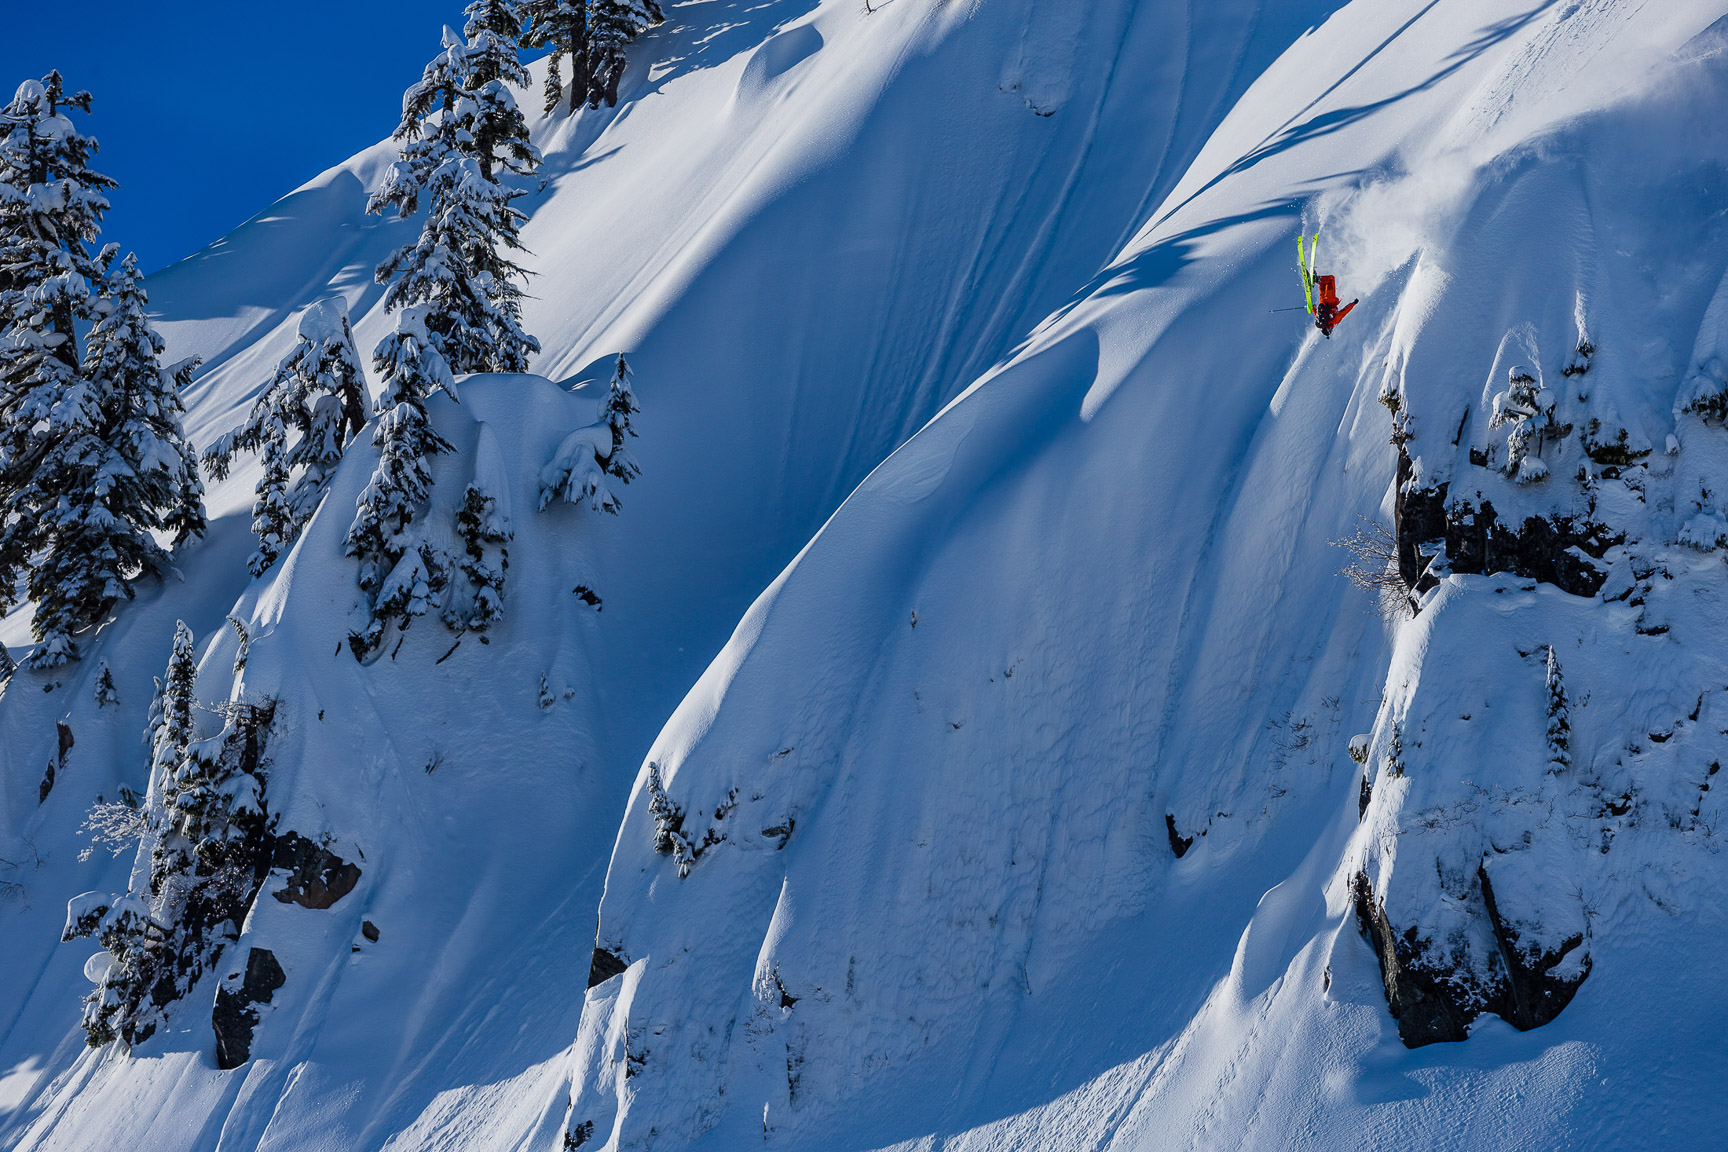 KC Deane, Mt. Baker, Washington